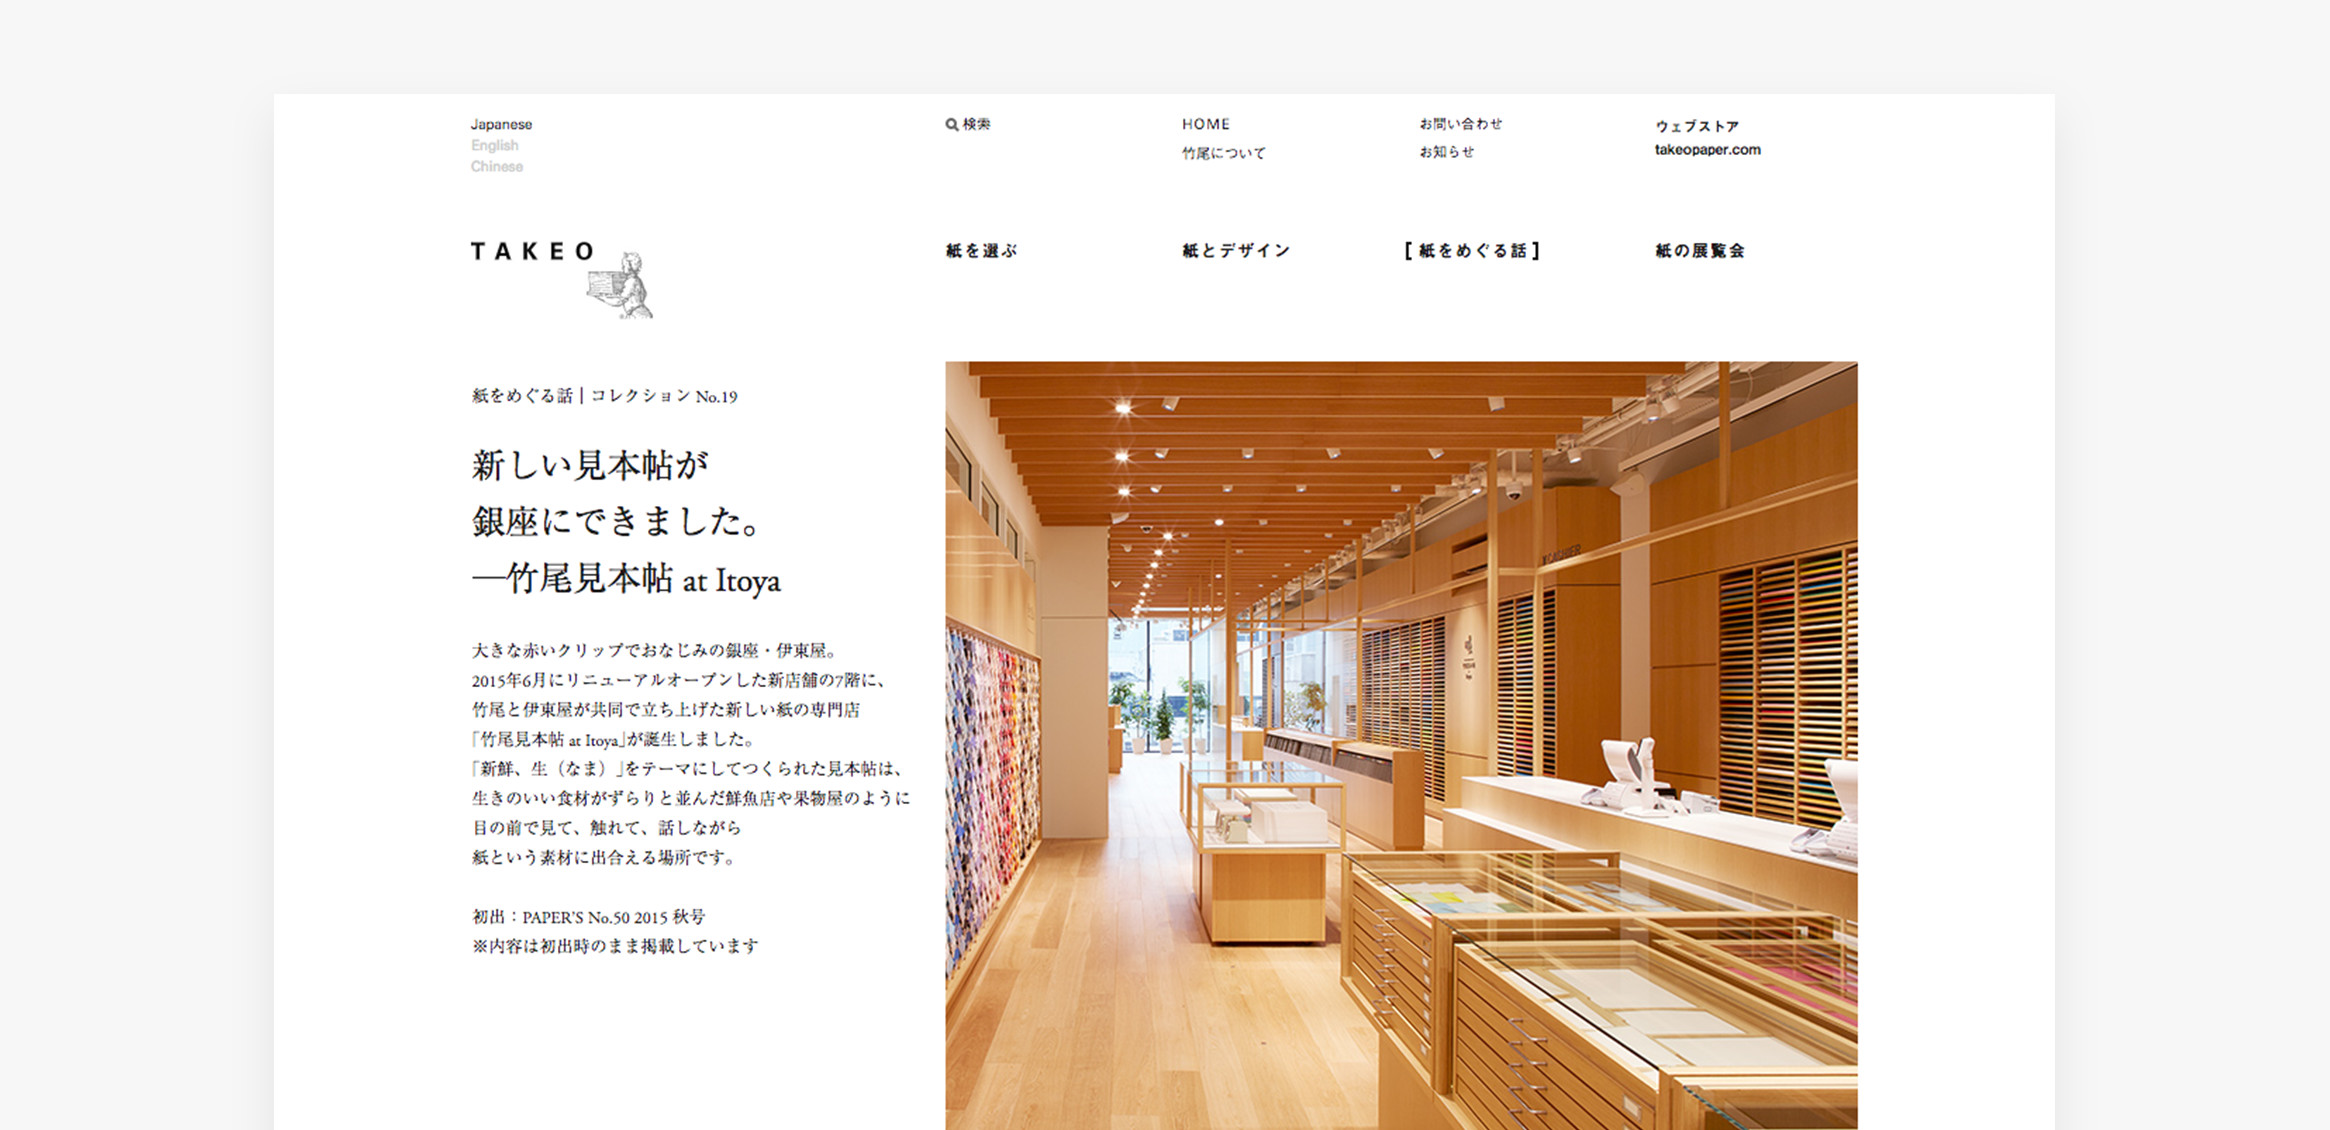 Takeo corporate website5枚目